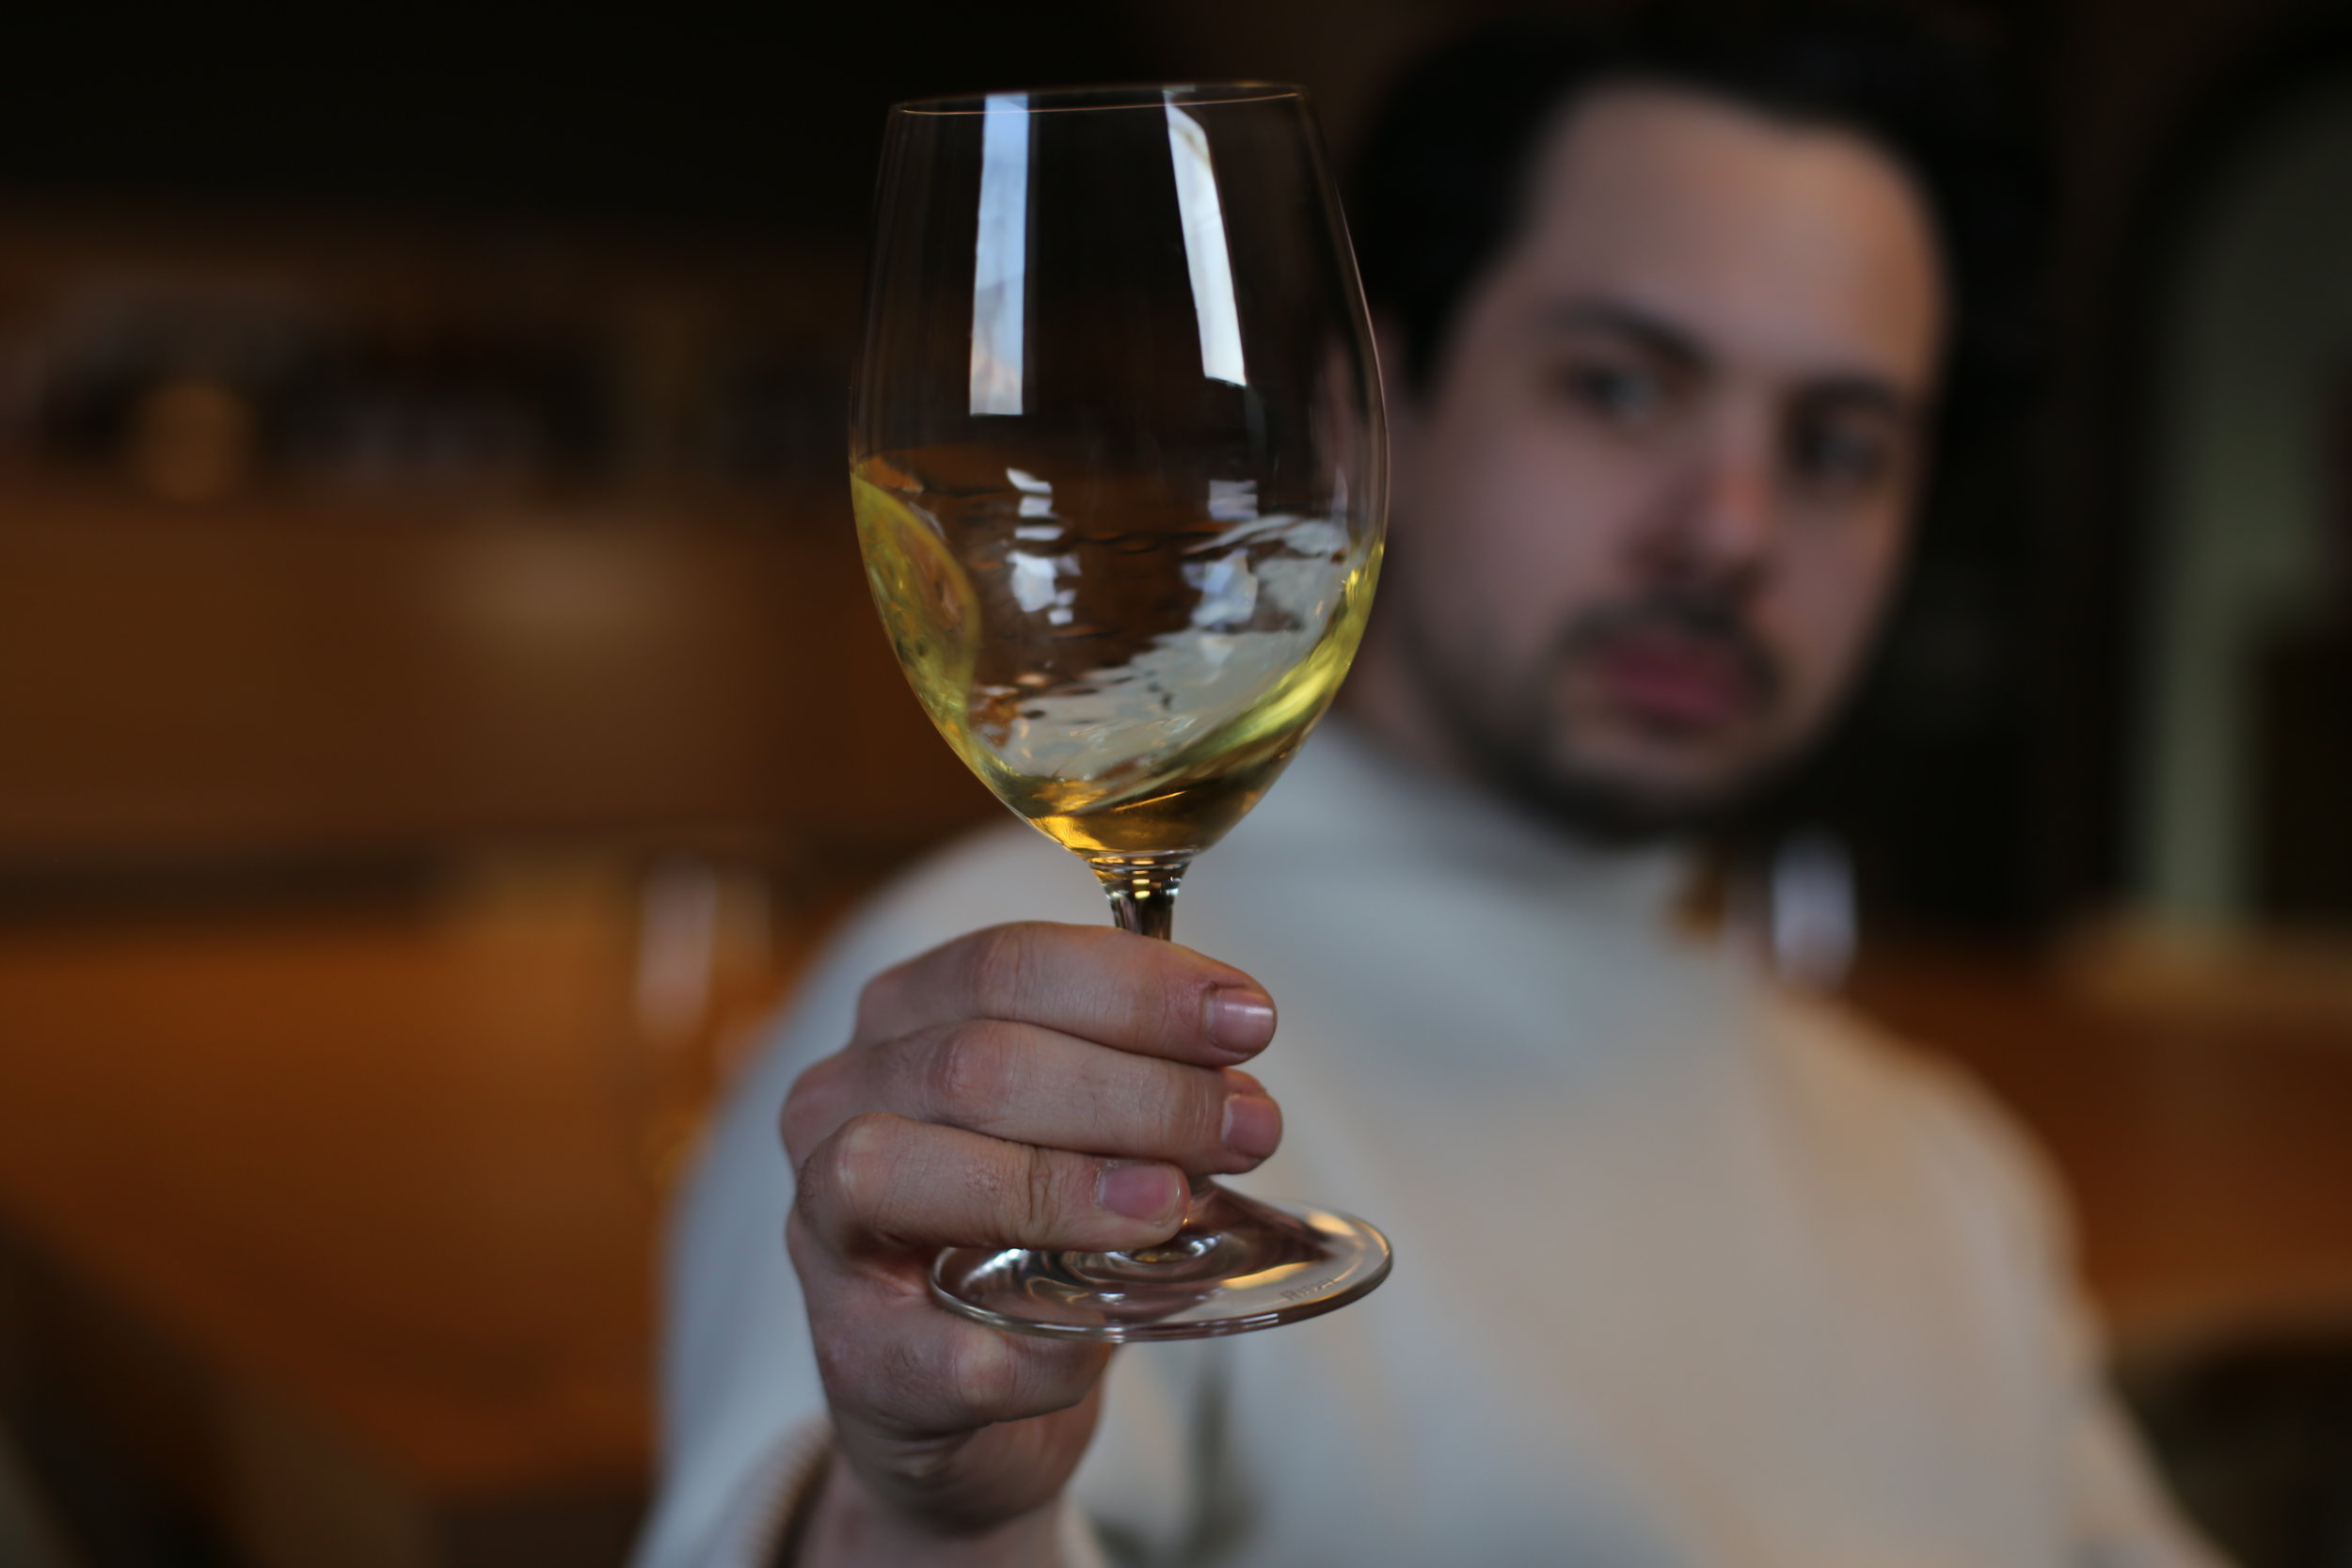 'White wine' so many possibilities…